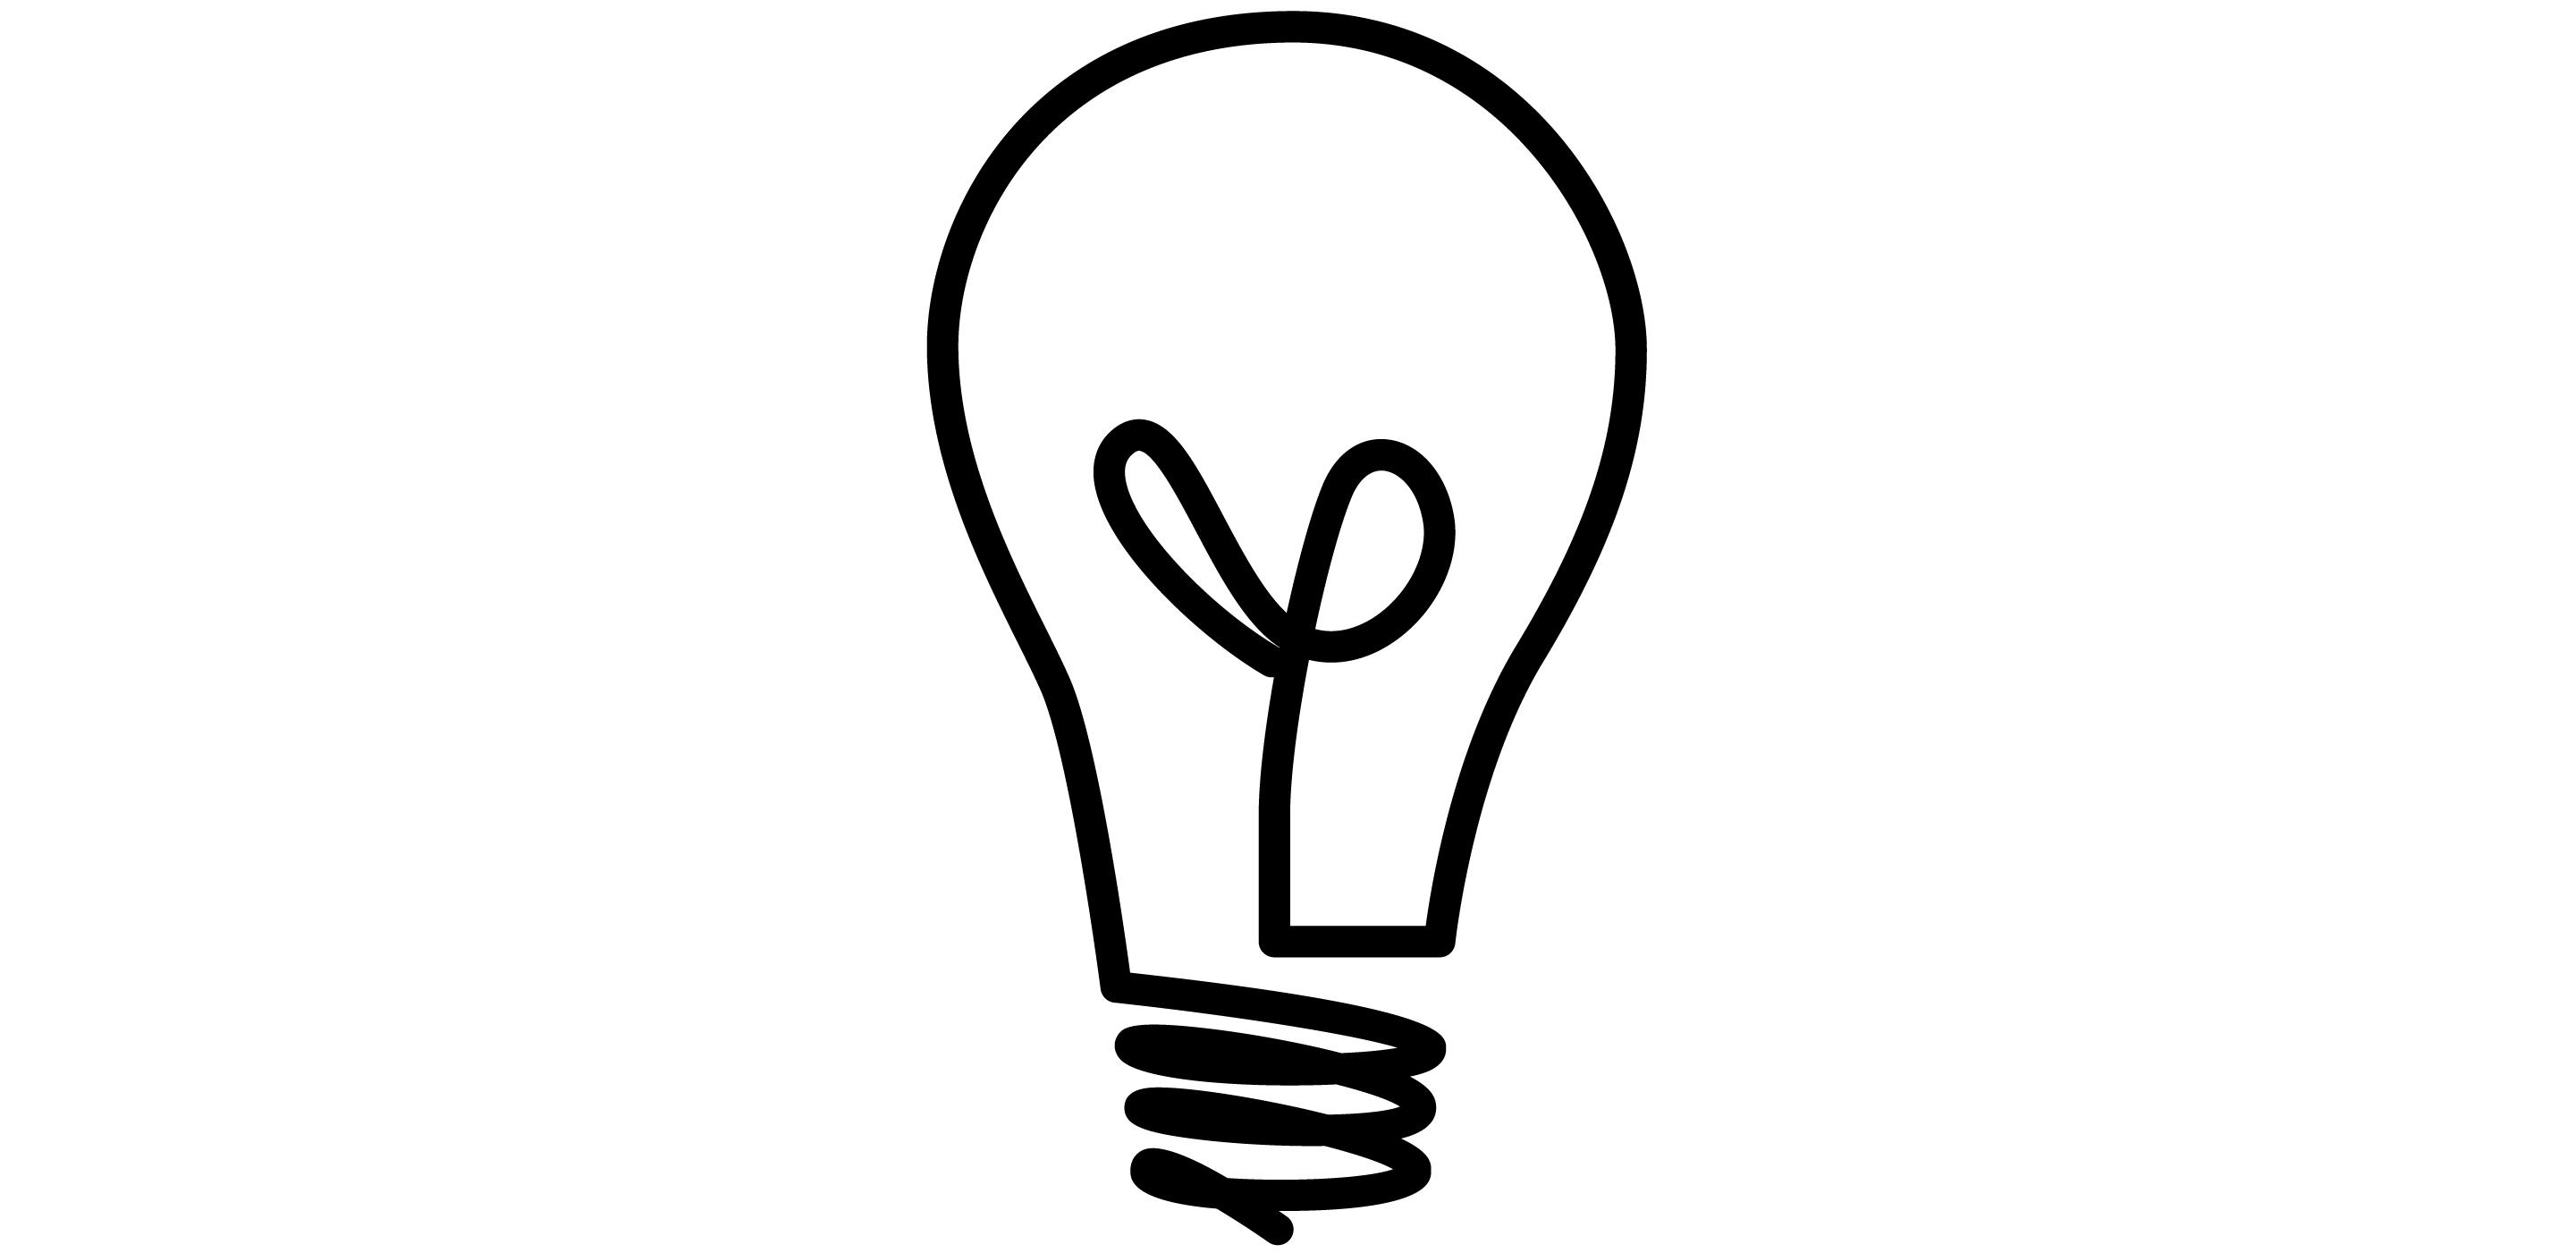 Pictures Of Light Bulbs Clipart Free Download On Clipartmag